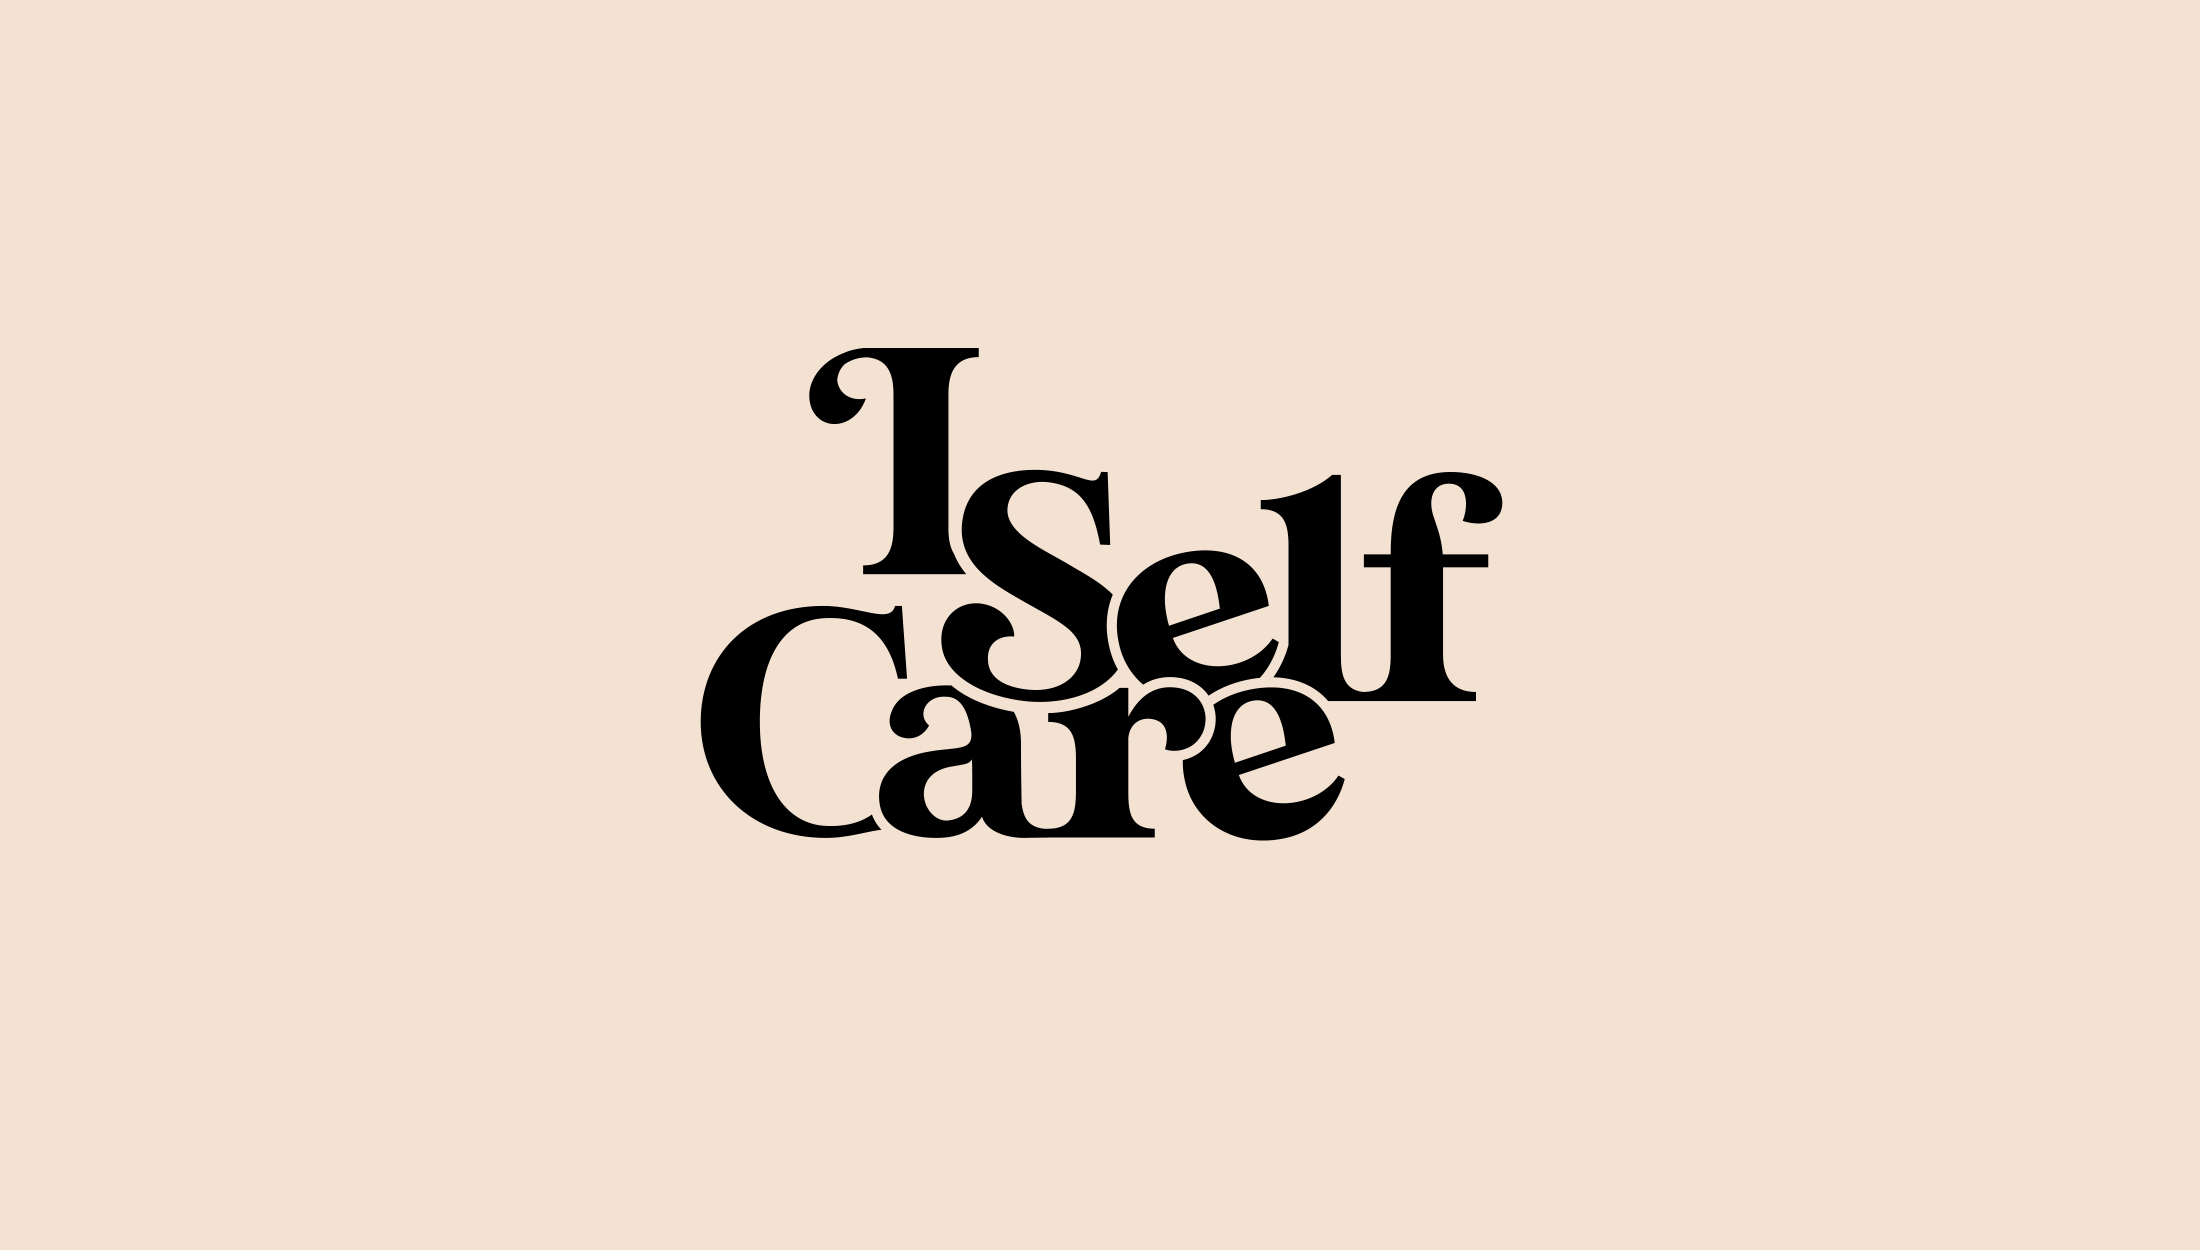 Logo design for I Self Care, a body care and home wear line focused on selling candles and soaps that are non-toxic and derived from plants - designed by Wiltshire-based graphic designer, Kaye Huett